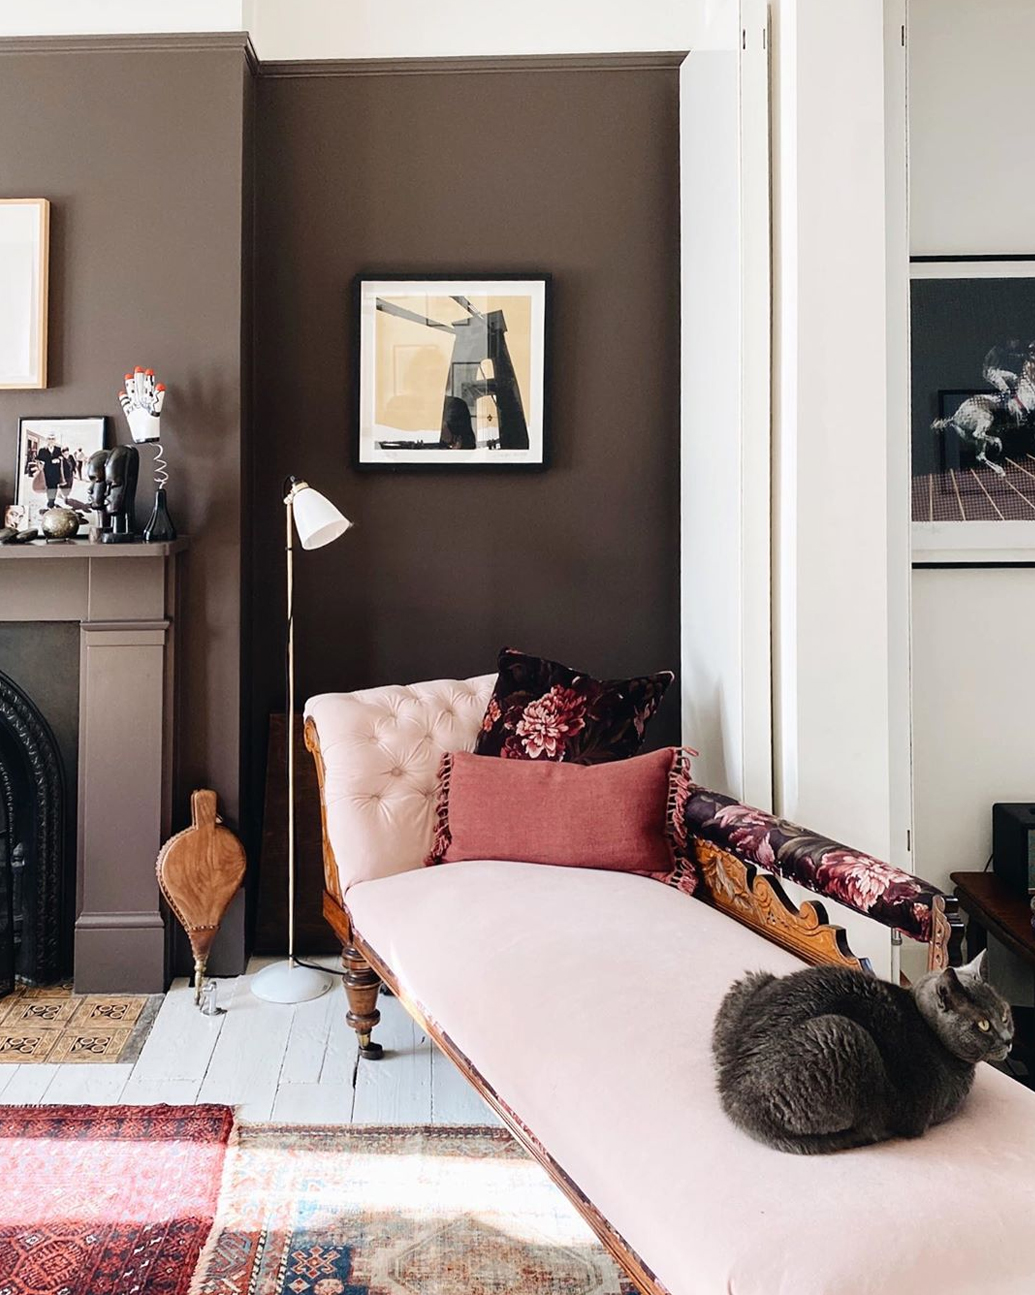 Interior shot from @madaboutthehouse featuring dark moody walls and pink soft furnishings.